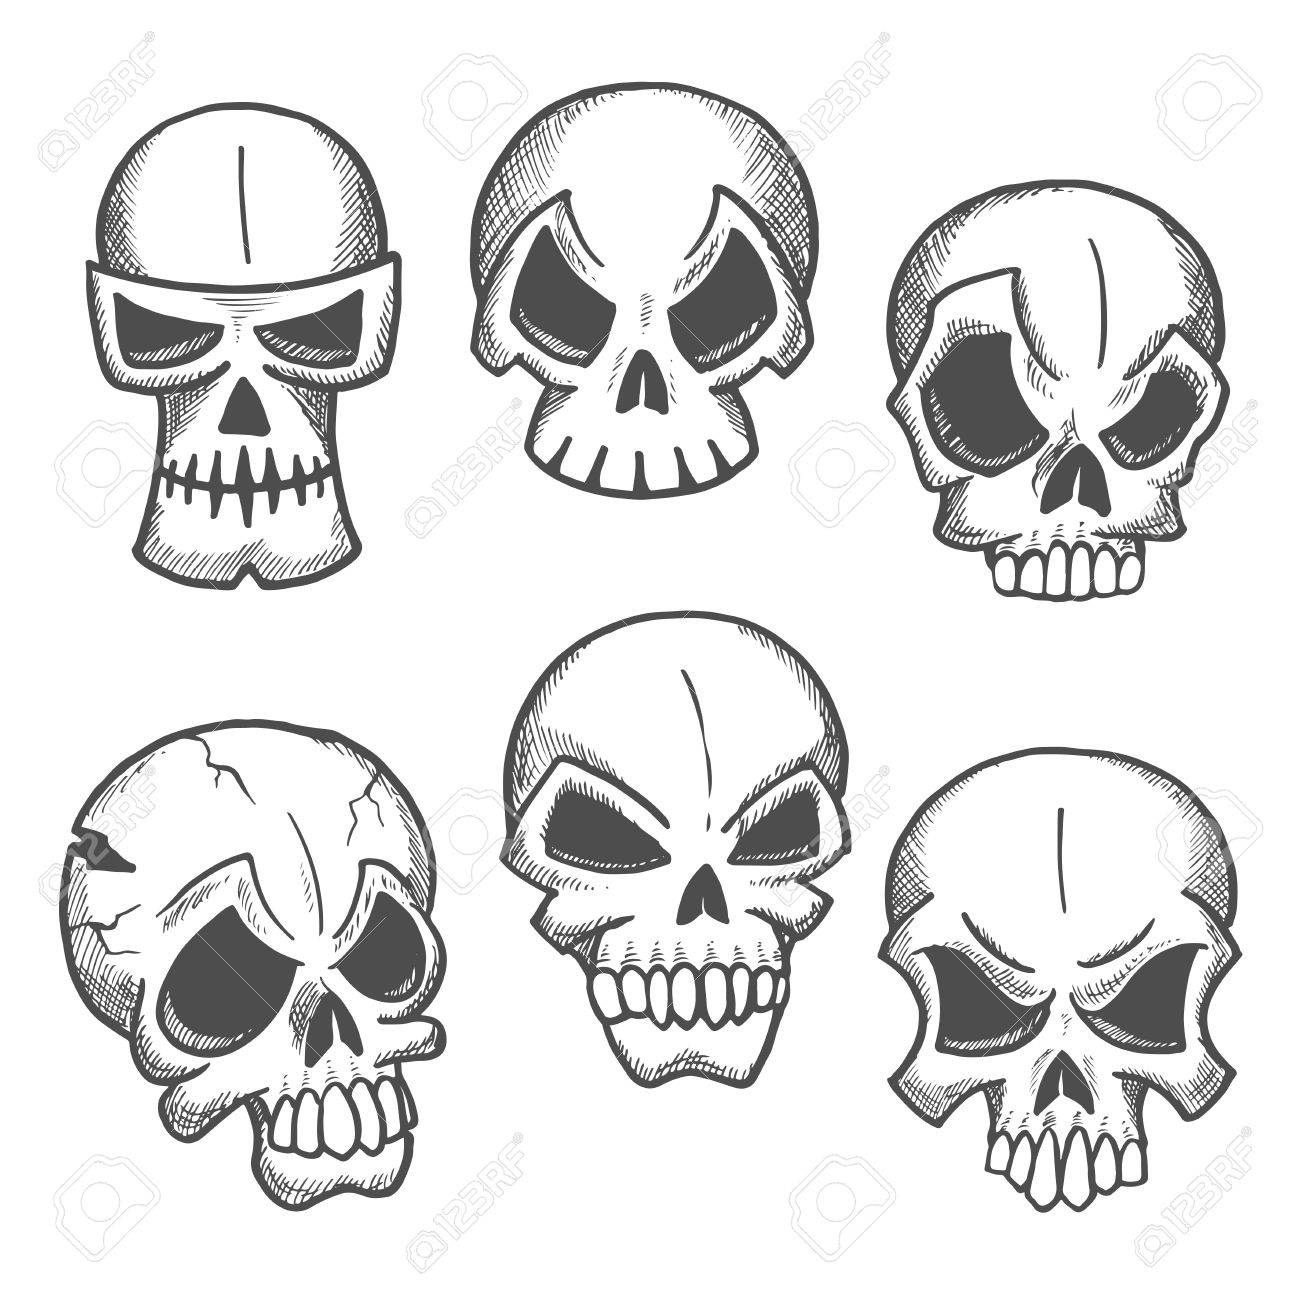 1300x1300 Artistic Skeleton Skulls Sketches Icons. Abstract Cranium Shapes